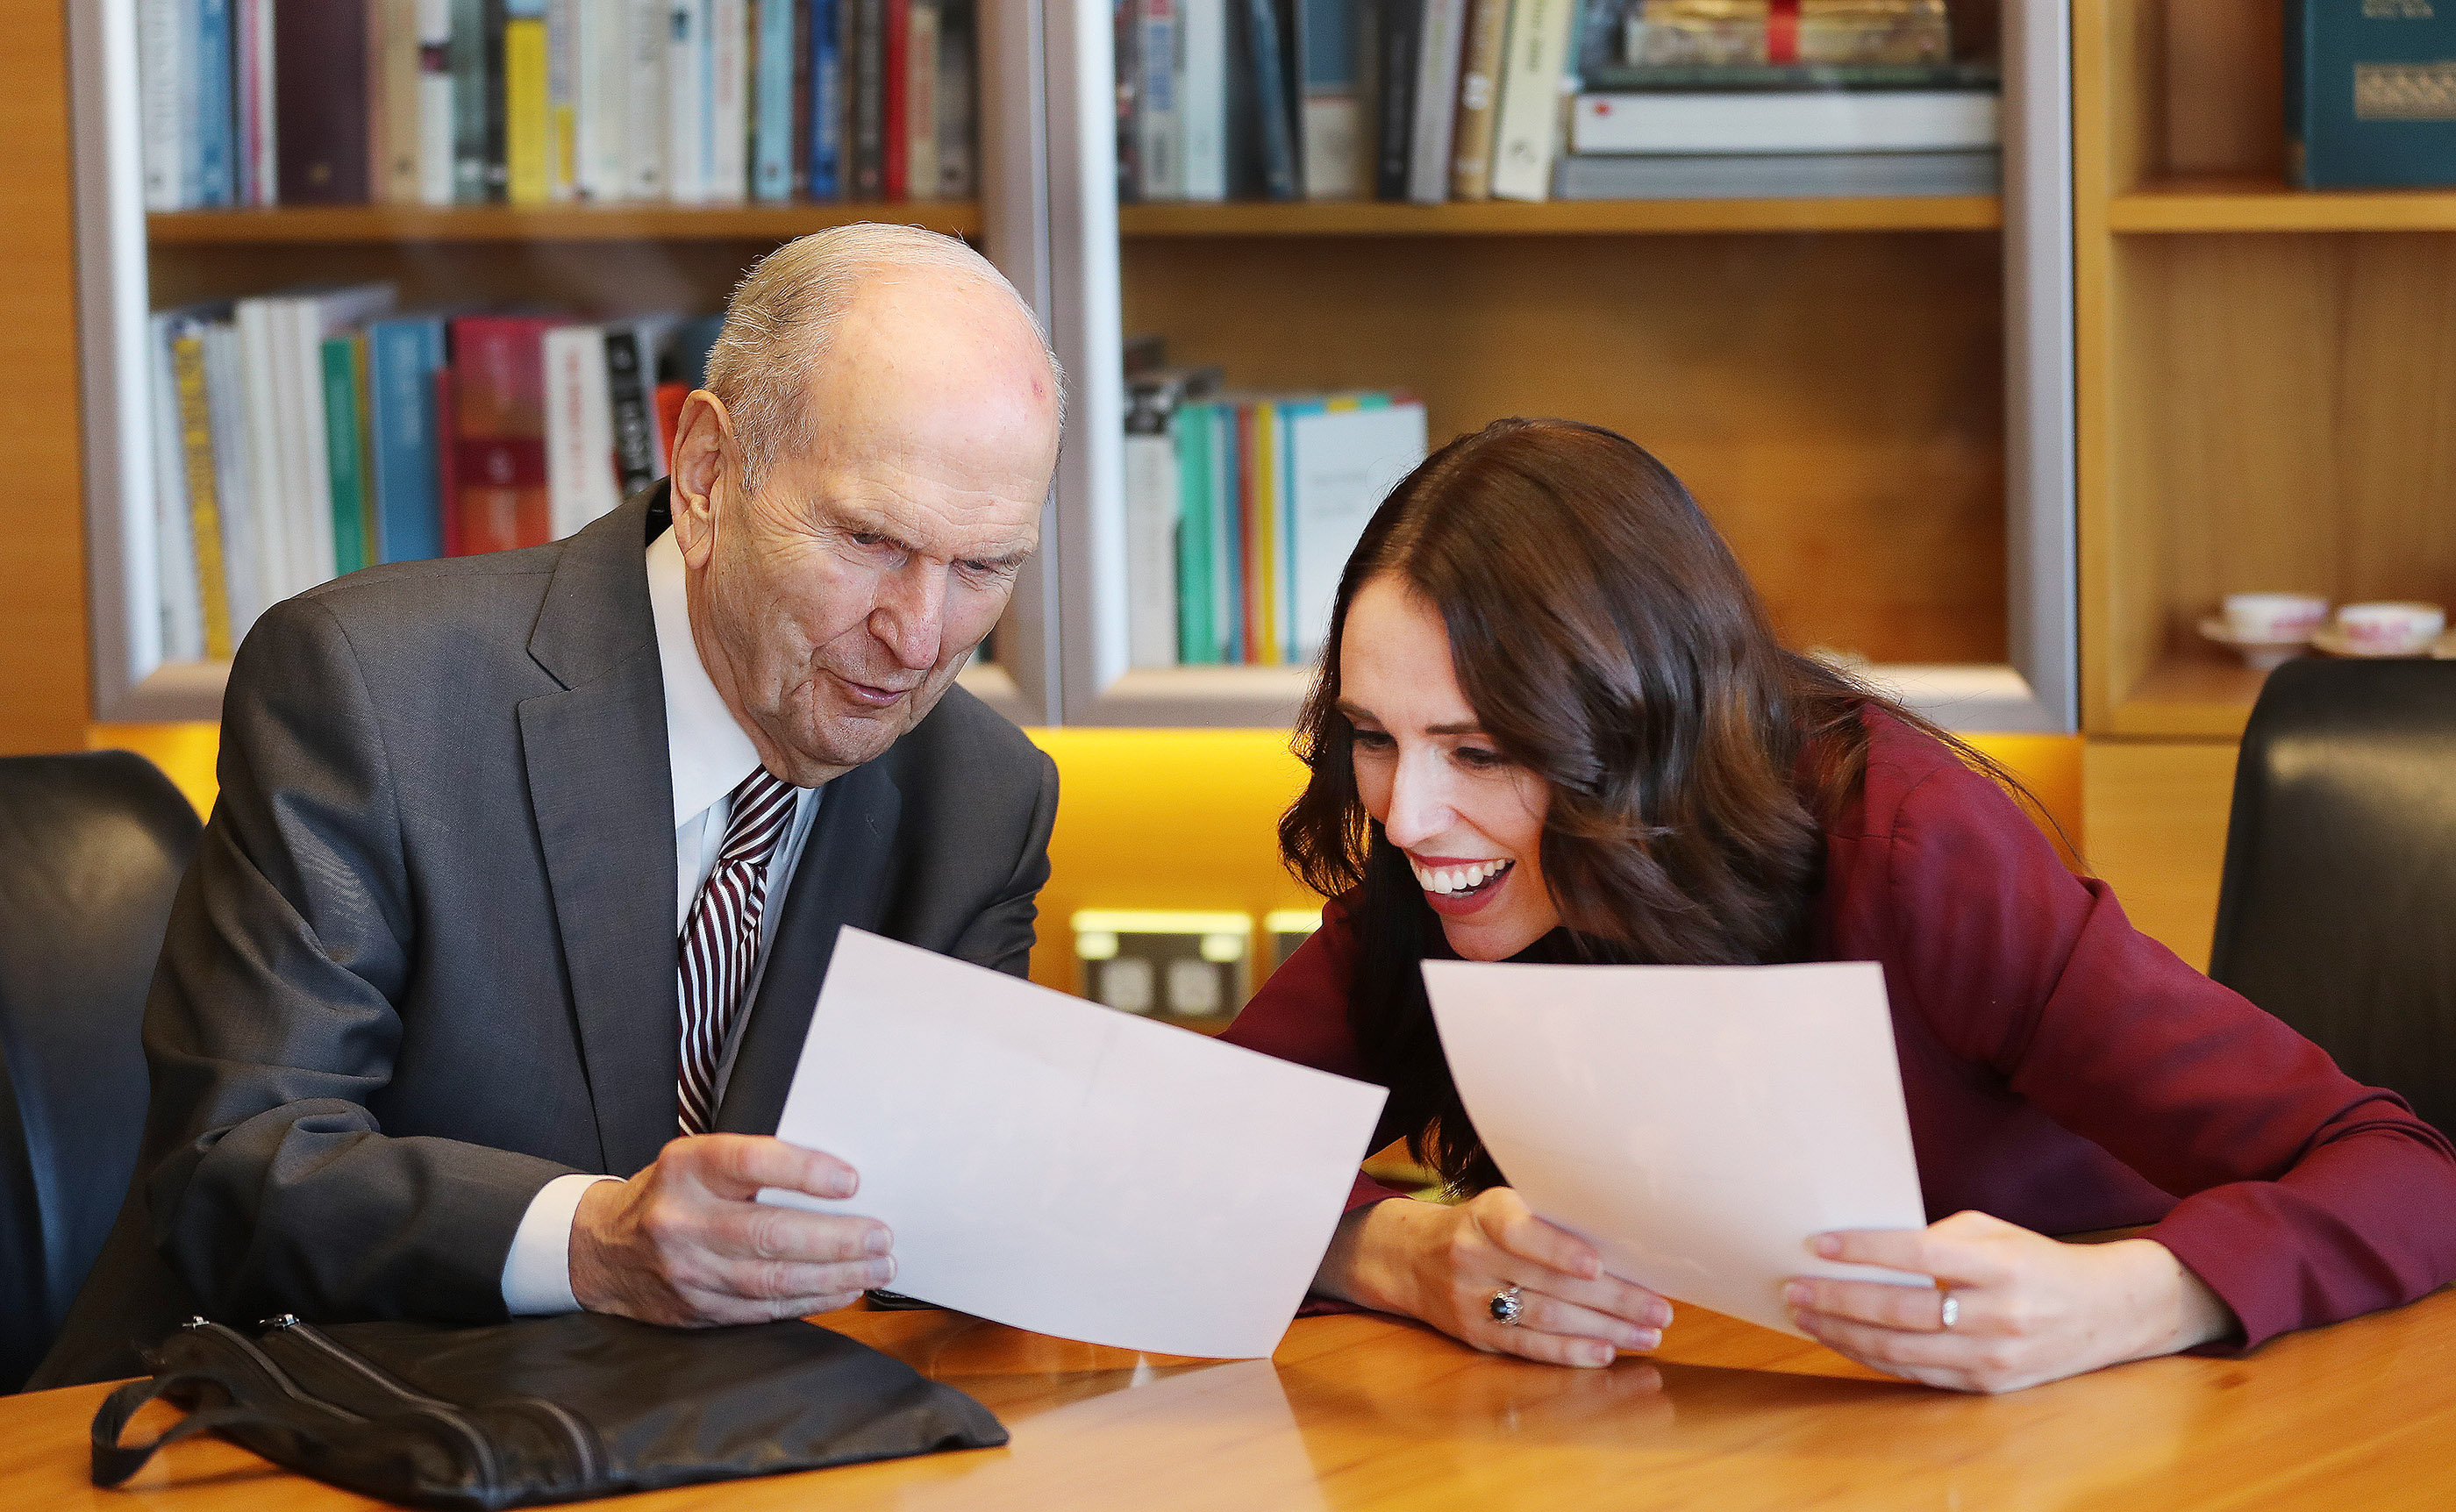 President Russell M. Nelson of The Church of Jesus Christ of Latter-day Saints gives photos of the First Presidency and Quorum of the Twelve Apostles to New Zealand Prime Minister Jacinda Ardern in Wellington, New Zealand, on Monday, May 20, 2019.